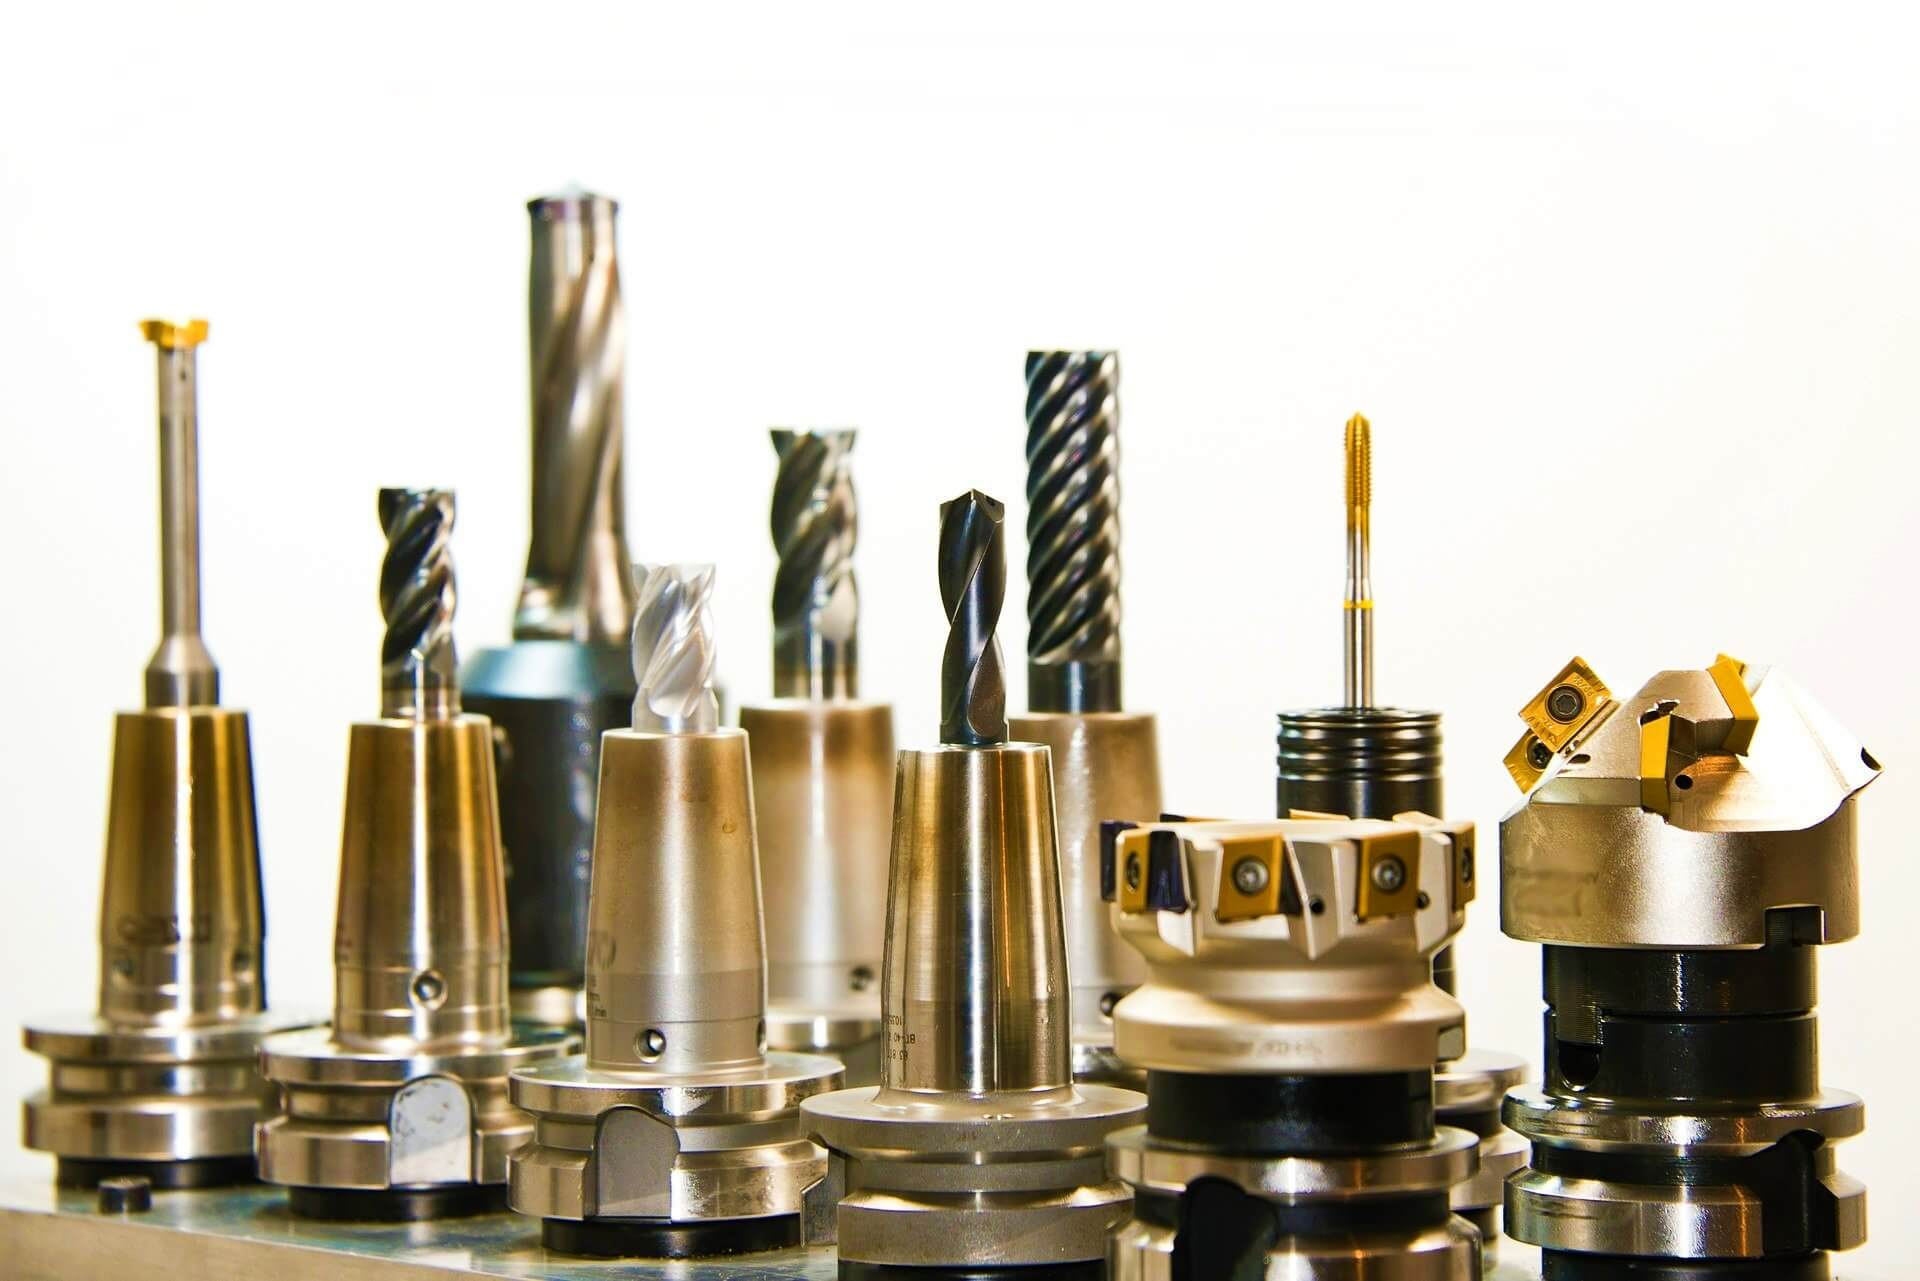 CNC Machine Tools Problems and Solutions